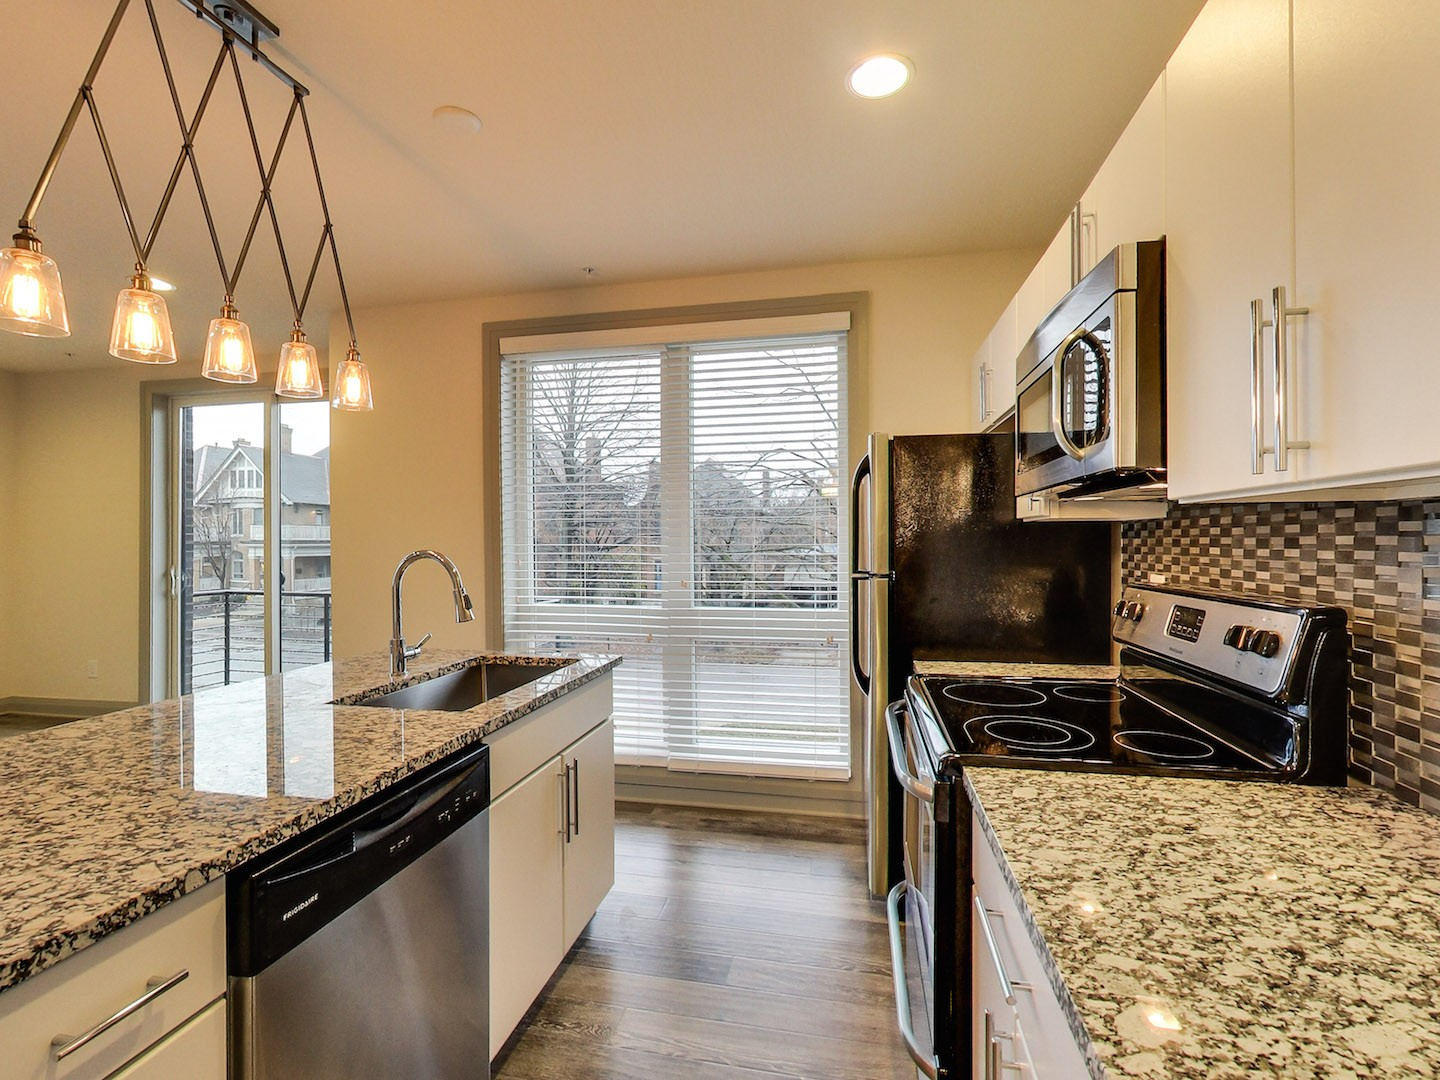 model_envy_40_west_apartments_kitchen_floor_to_ceiling